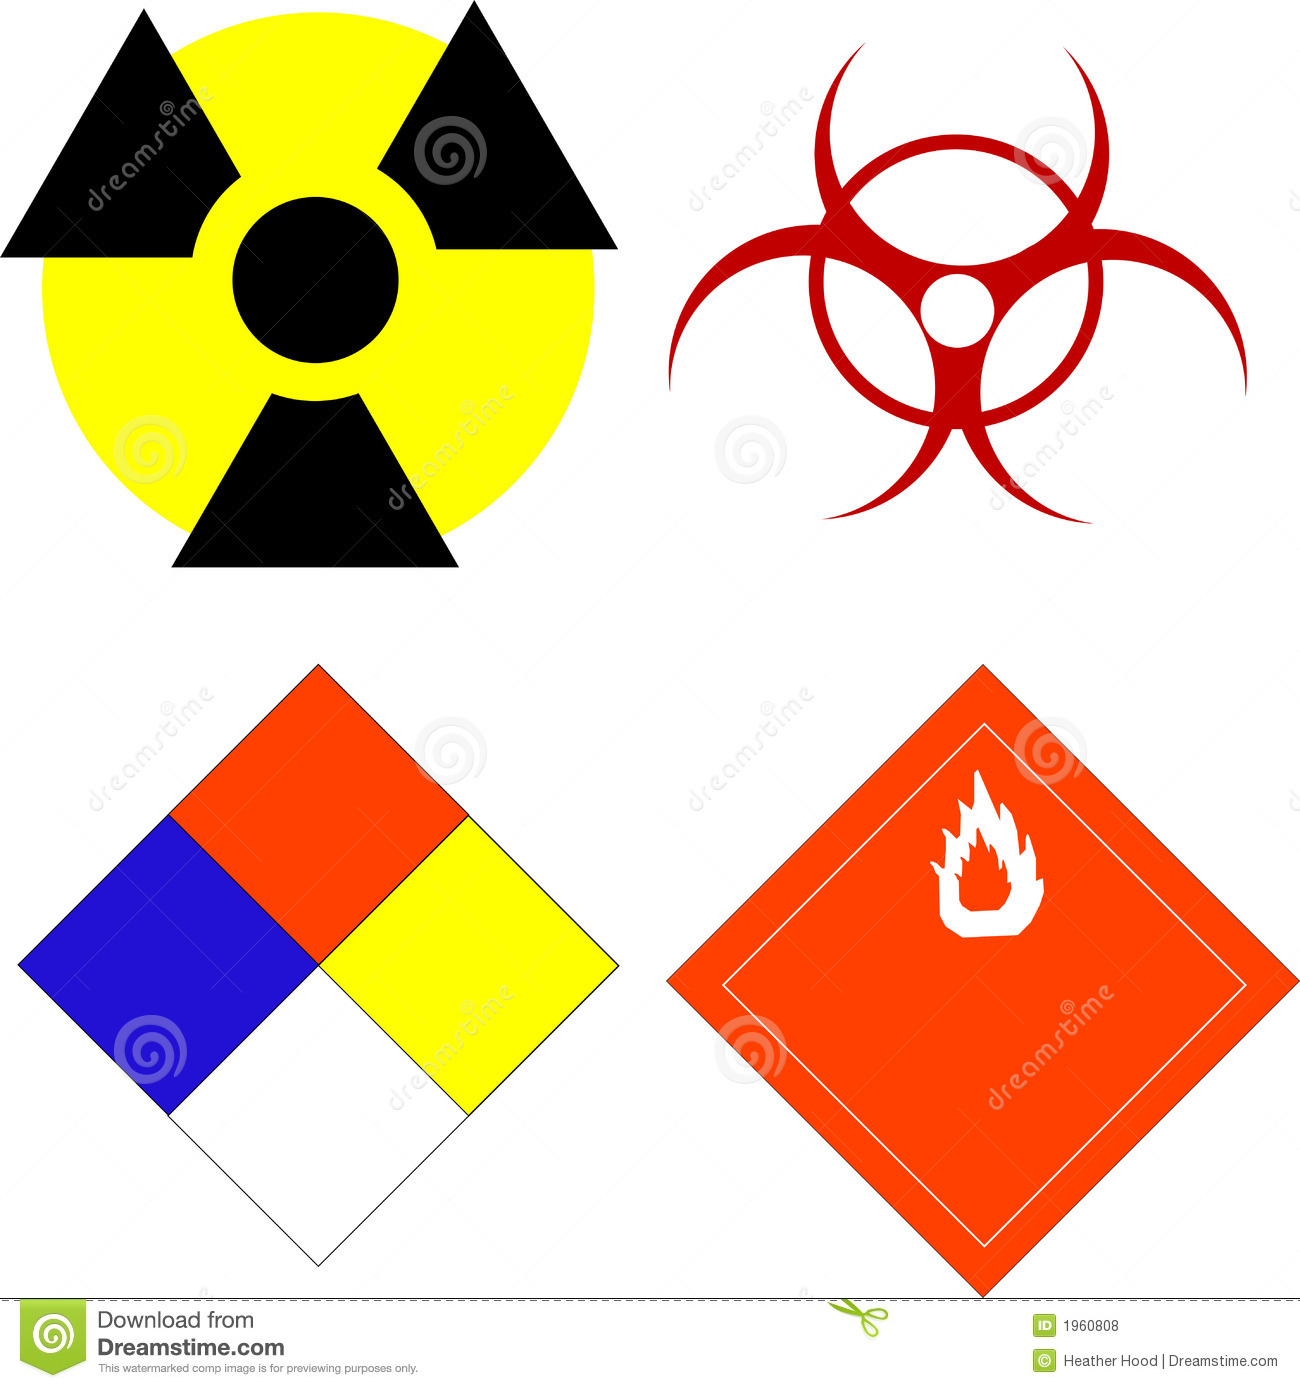 Scientific Safety Symbols Royalty Free Stock Photos - Image: 1960808